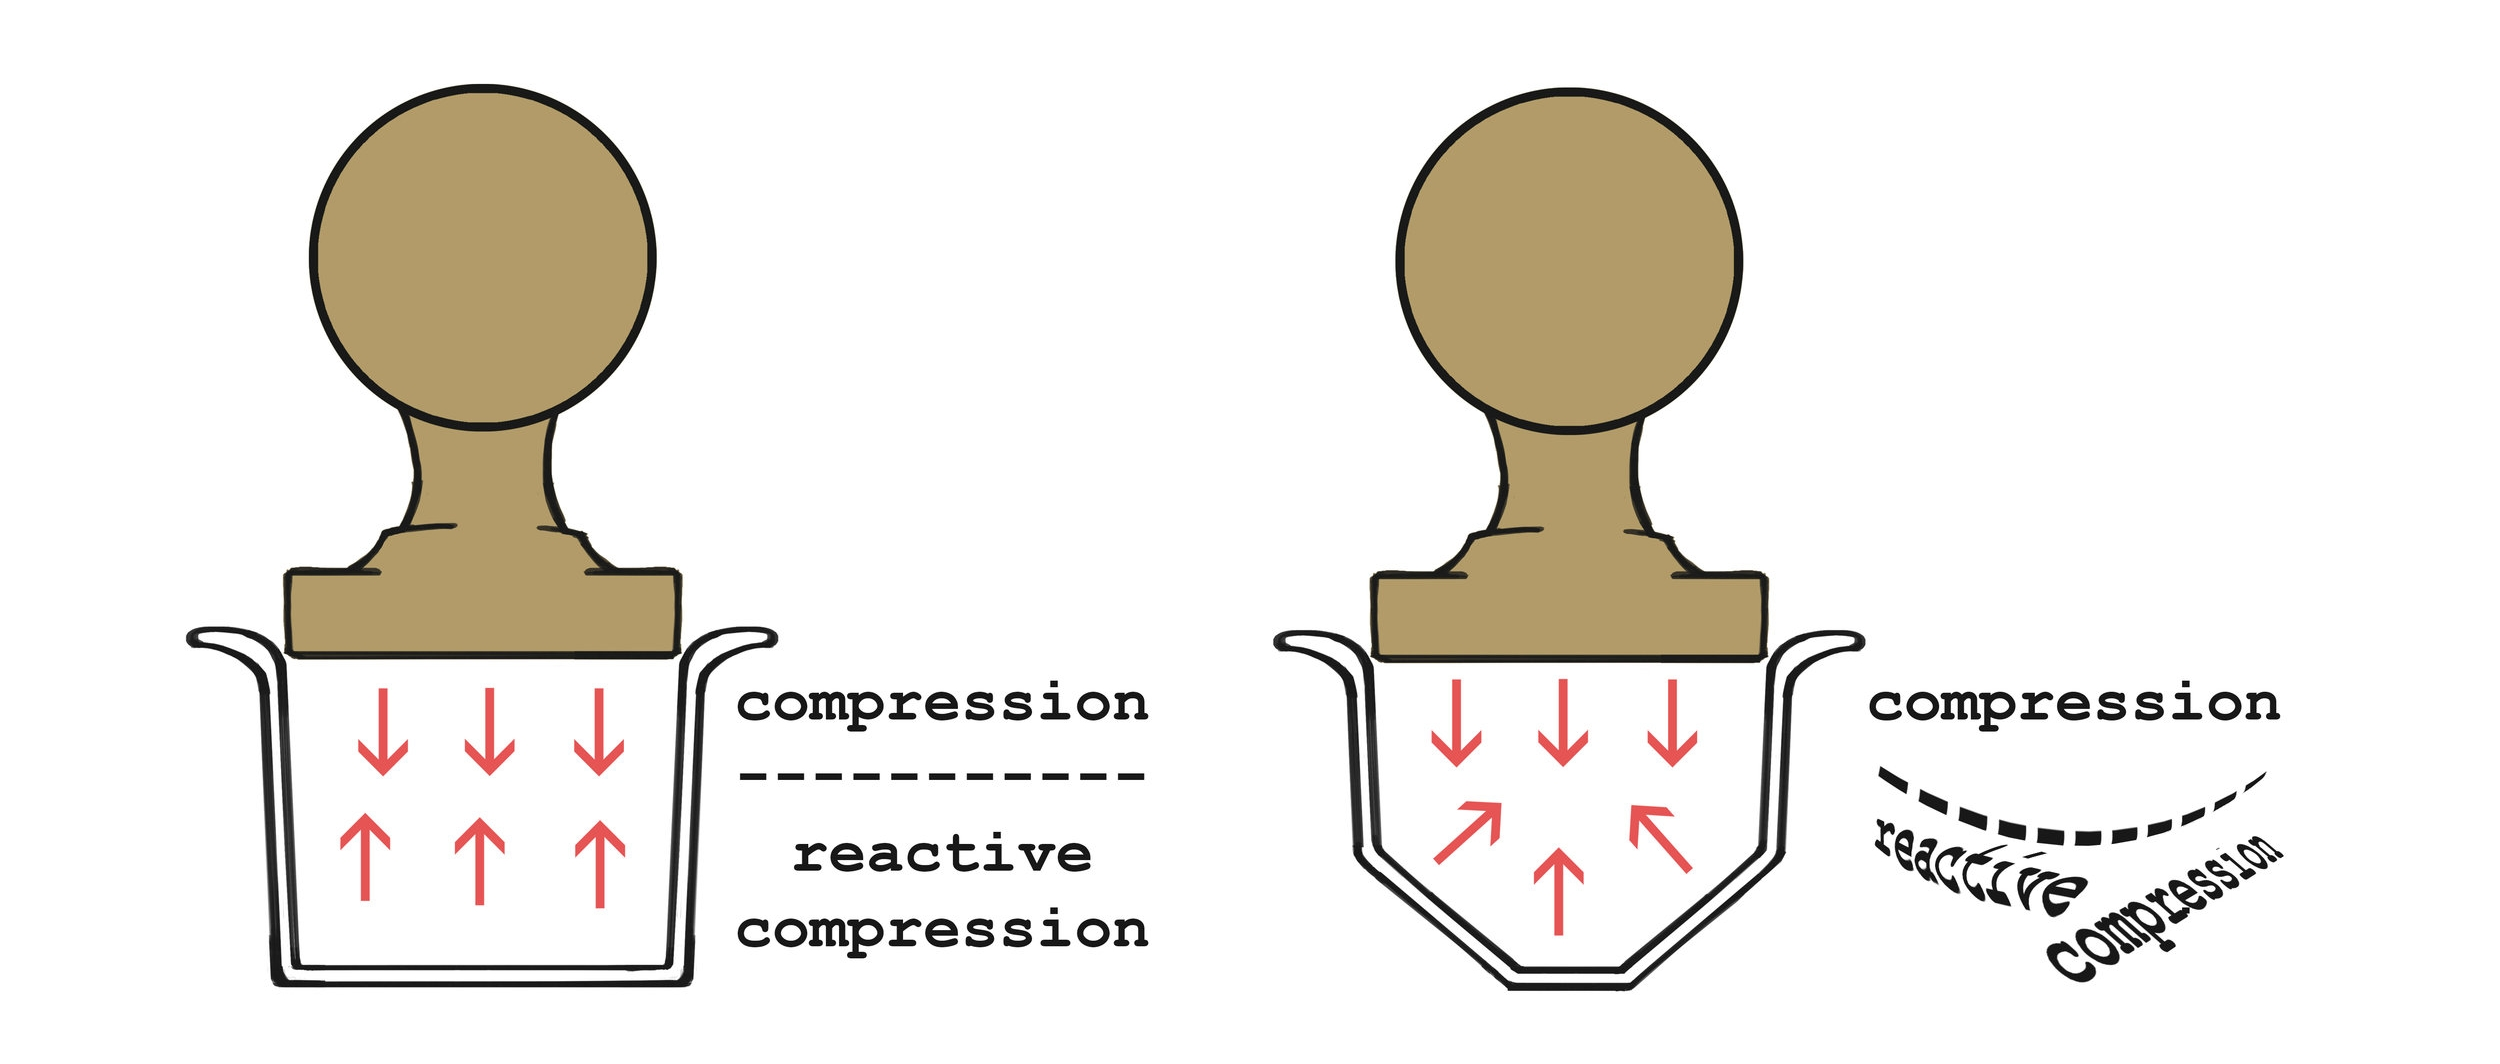 Figure 1. Two basket shapes and their compression effect.     Forces of compression are gradually dissipated the further away from the tamp. Reactive forces reflect the remaining energy at that point. (image not to scale)